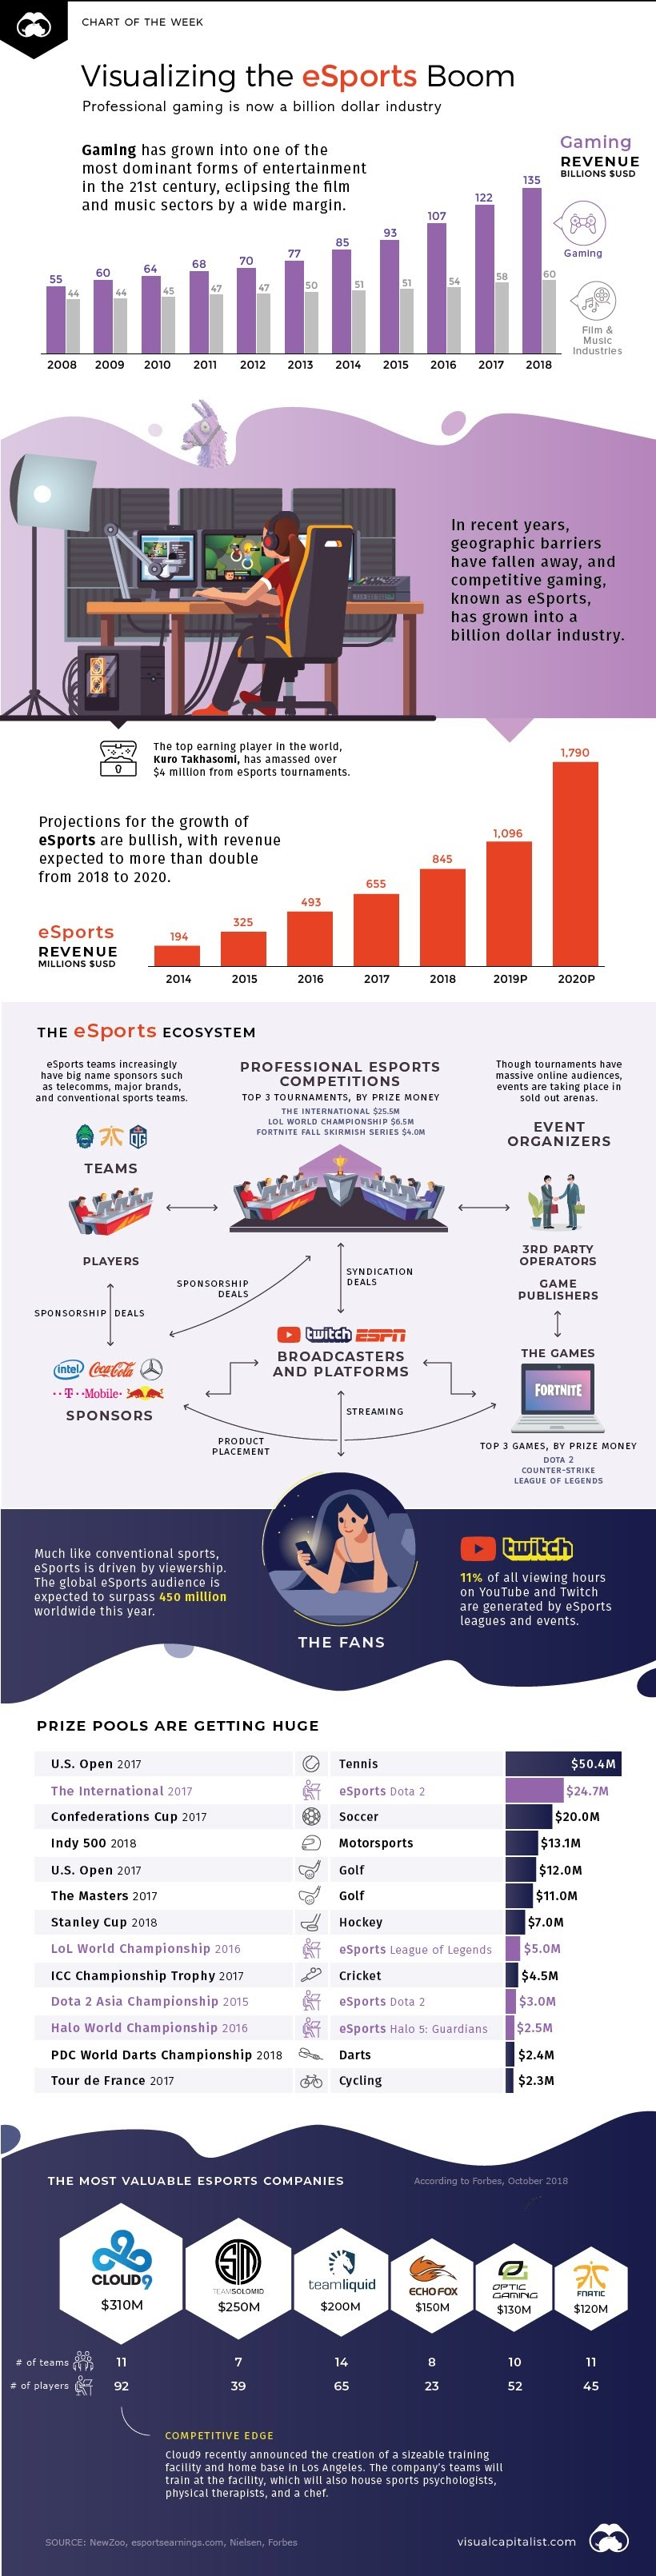 The eSports Boom, and the Numbers Behind the Sector's Explosive Growth